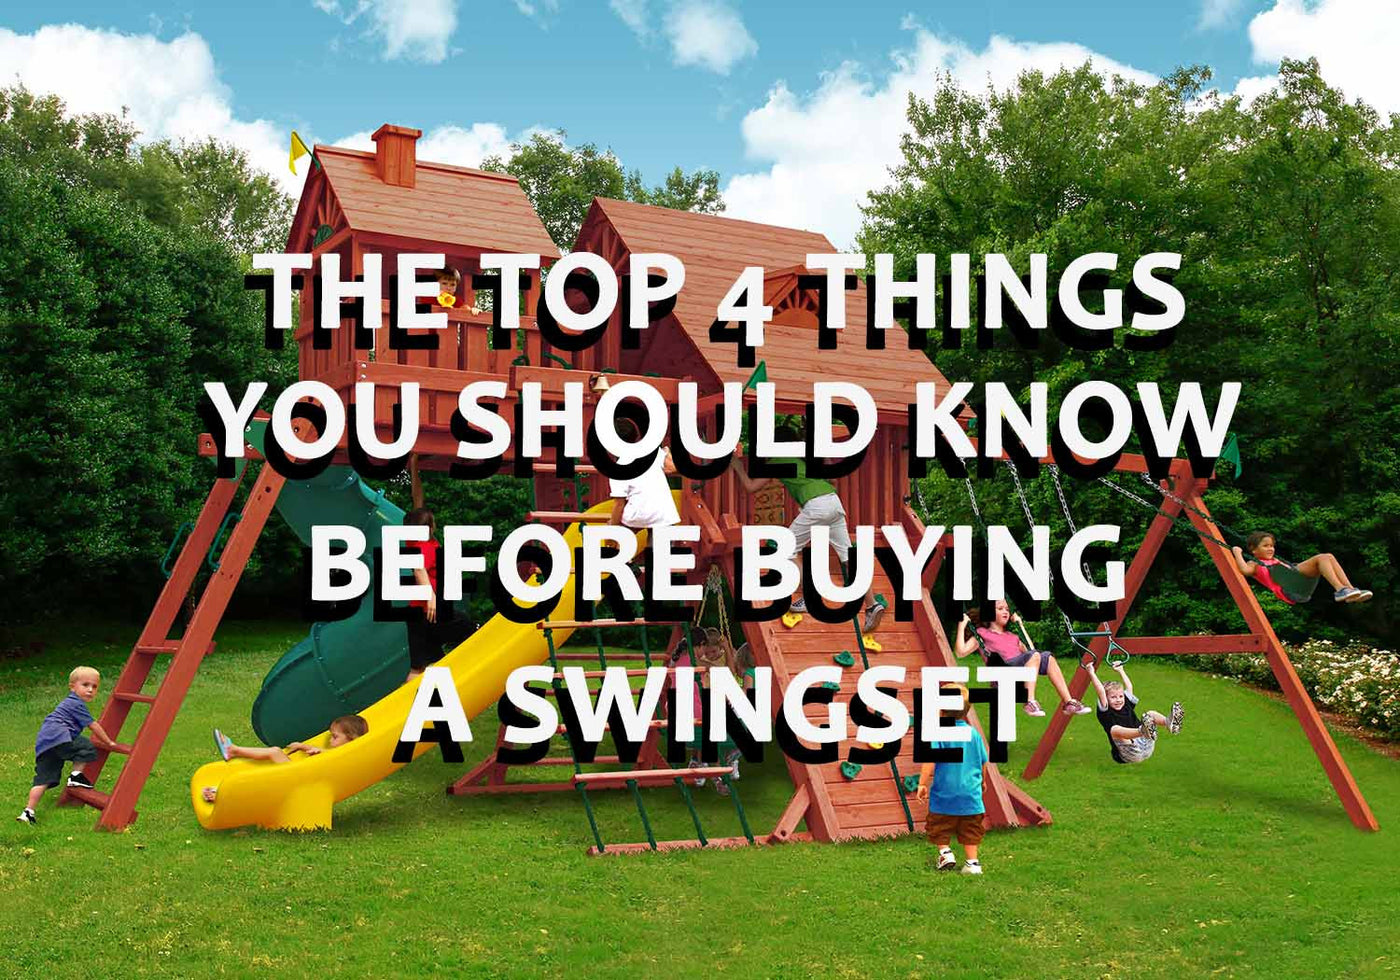 2f427c5a85d The Top 4 Things You Should Know About a Swing Set Before Buying One ...